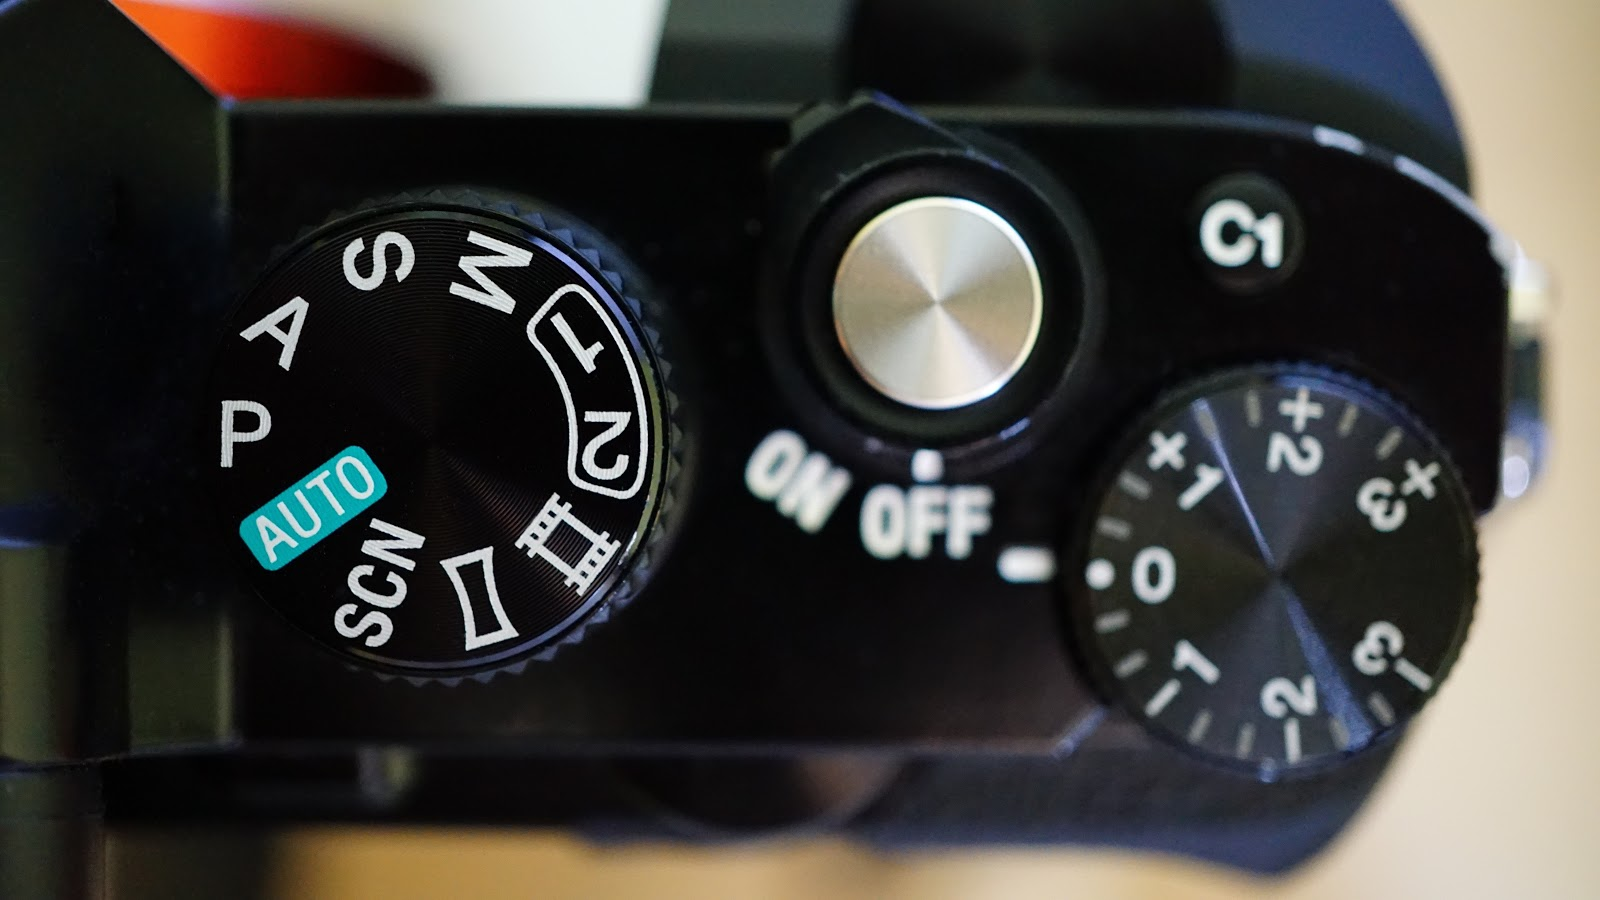 Exposure Compensation Camera Settings